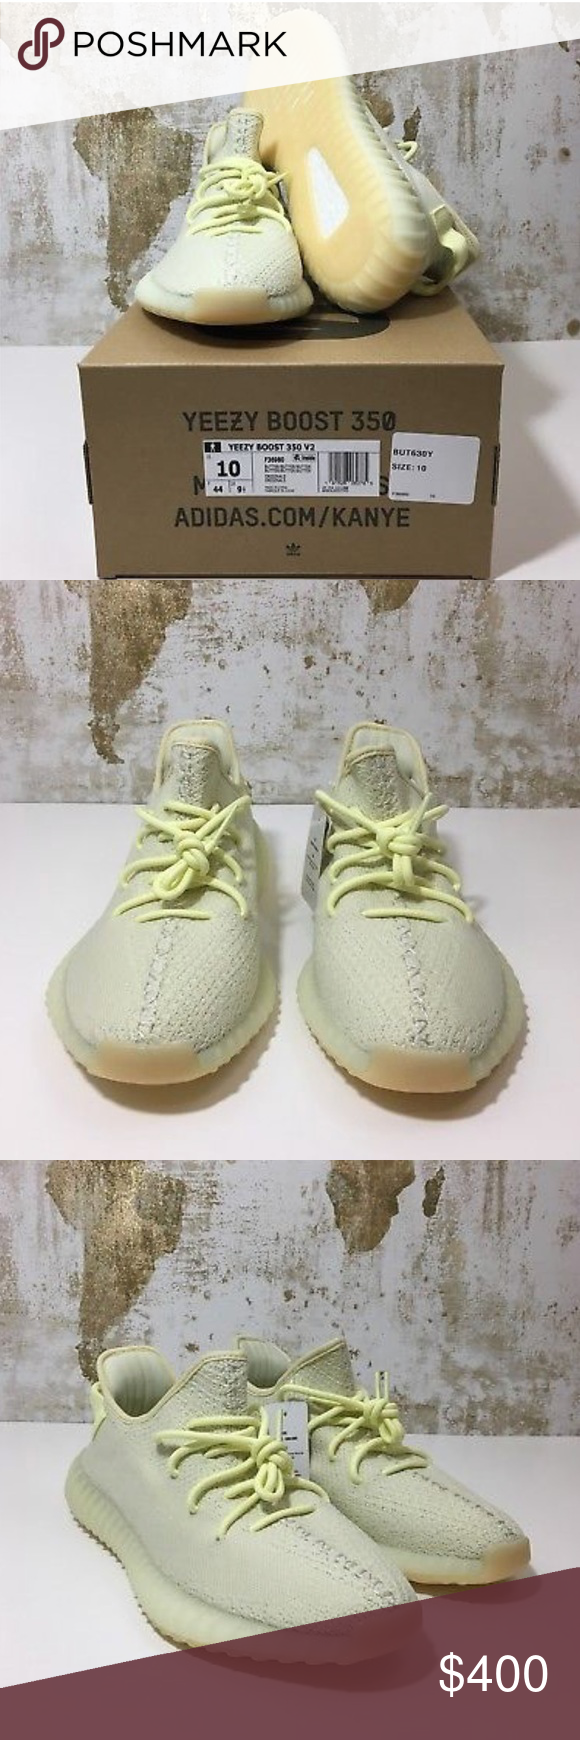 size 40 f3968 2cfd6 Spotted while shopping on Poshmark  Adidas Yeezy Boost 350 V2